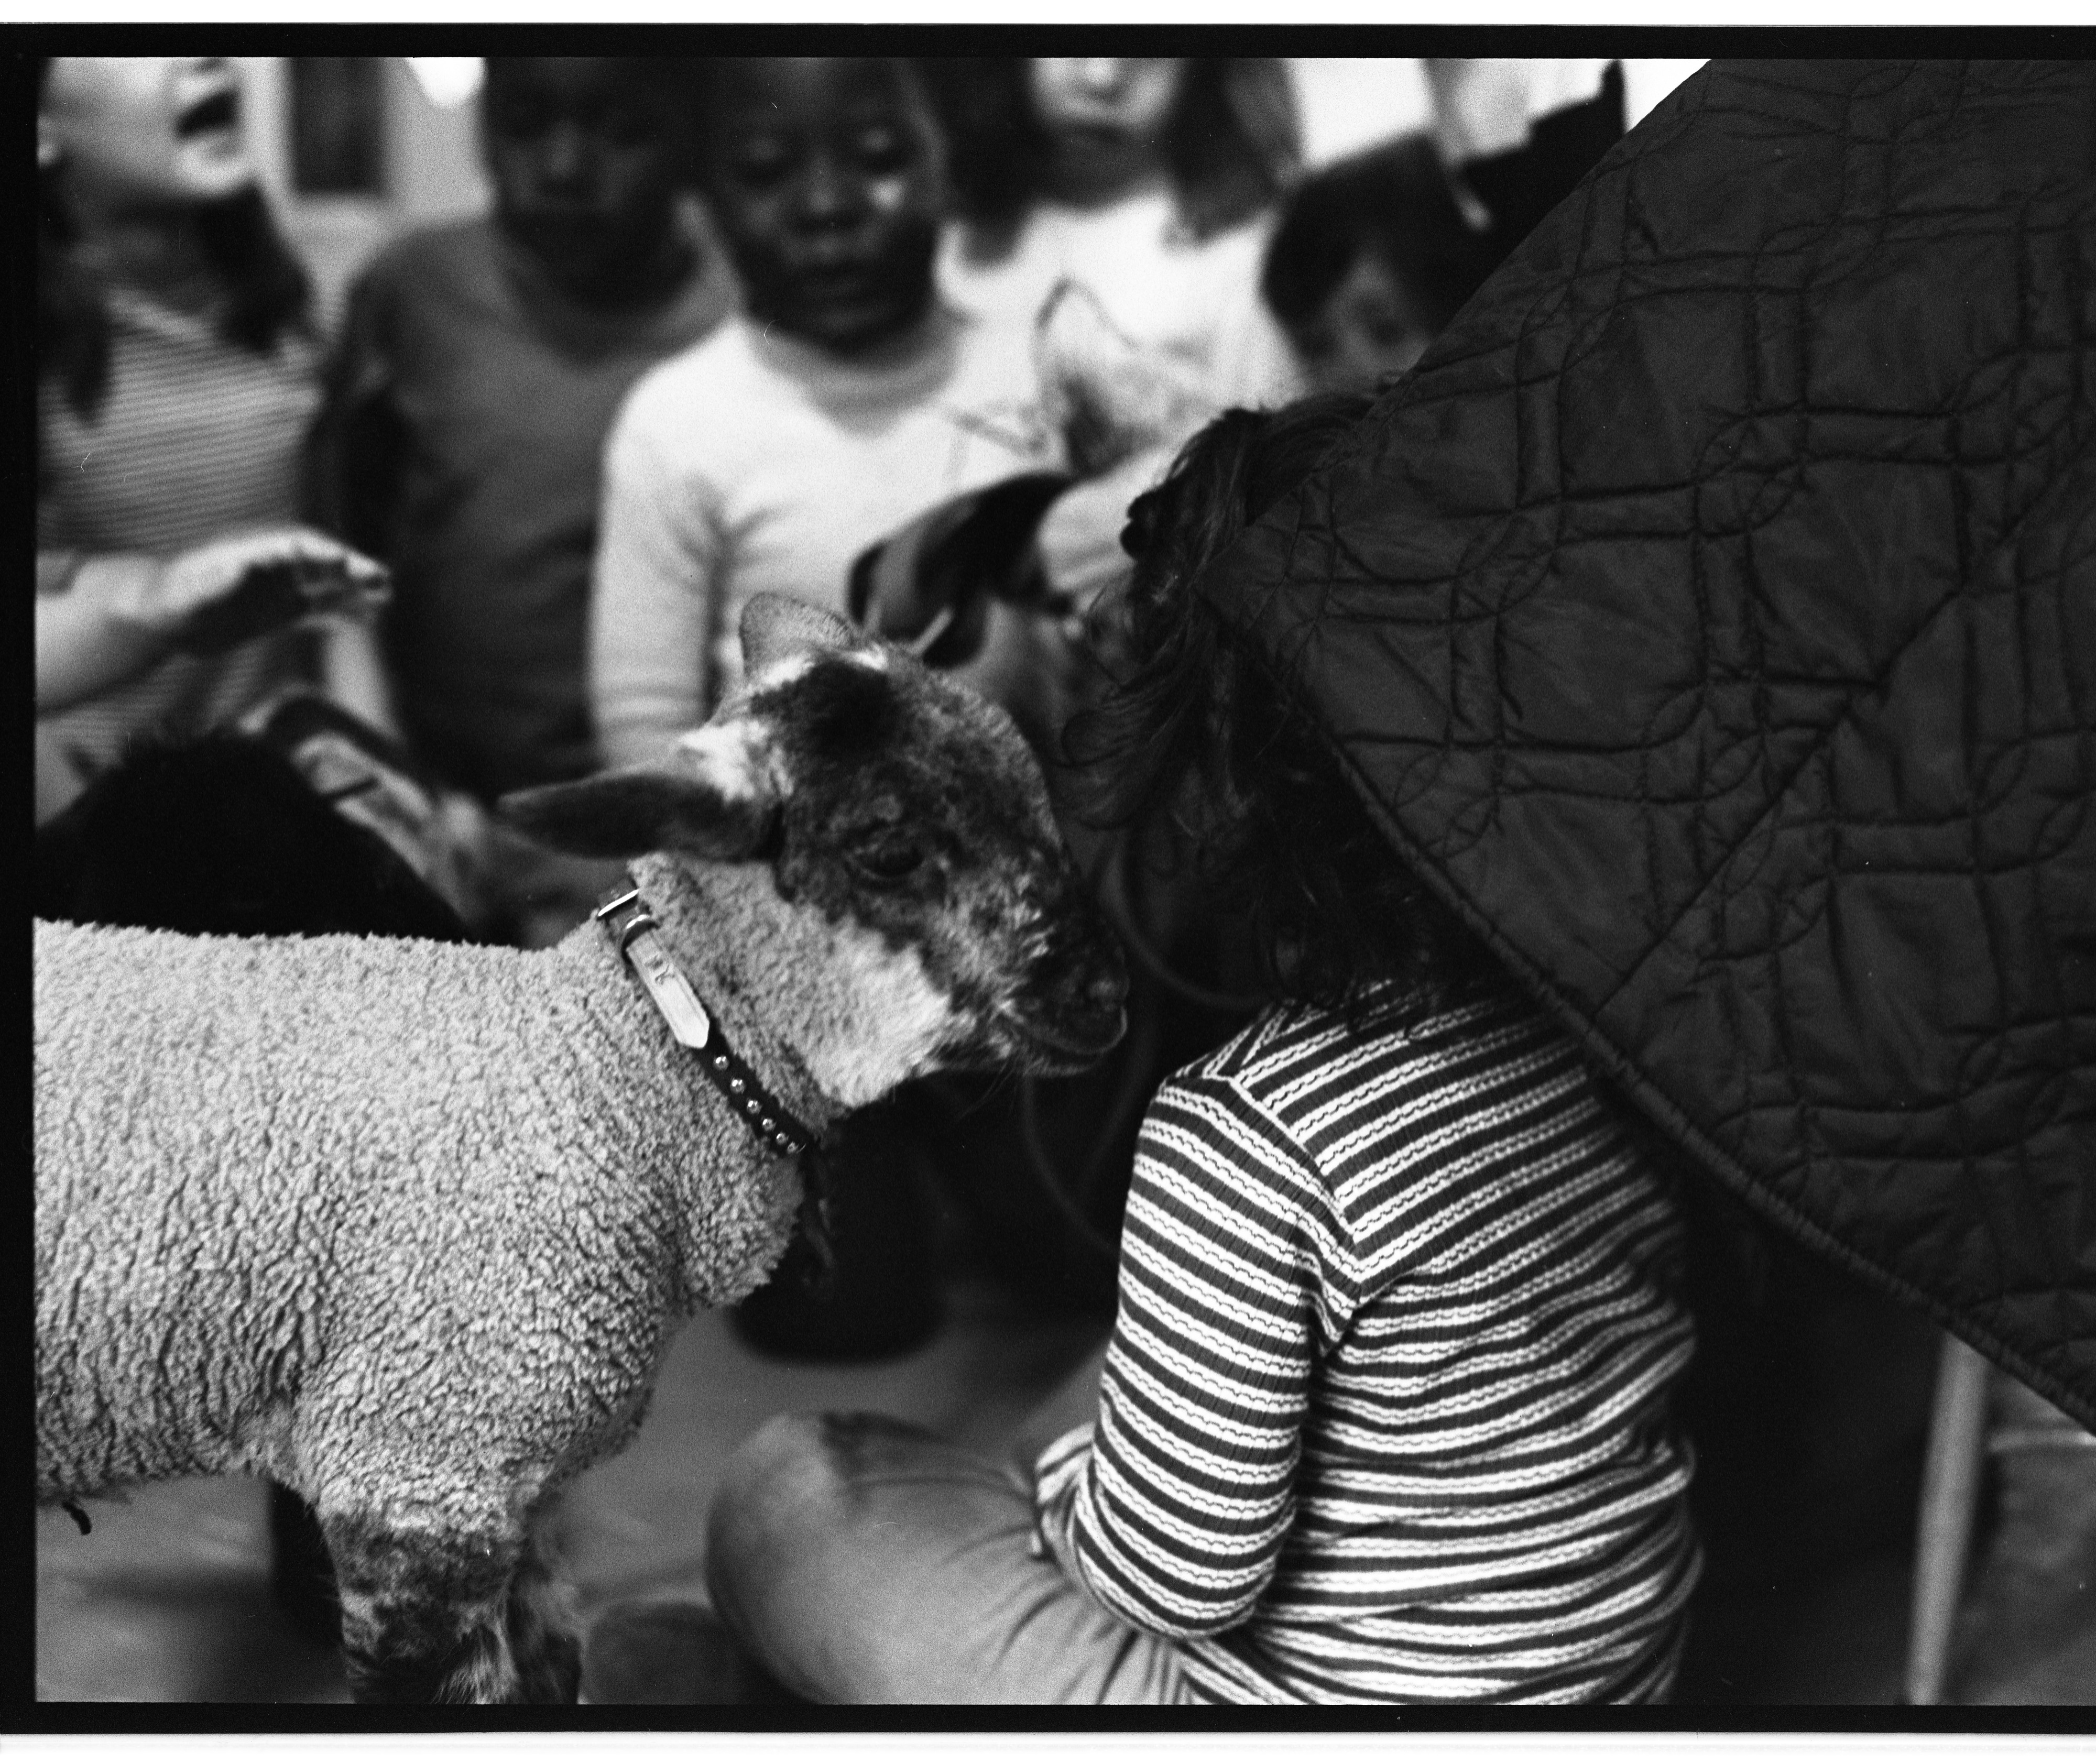 Child Gets A Visit From A Lamb At Perry Nursery School, May 28, 1971 image